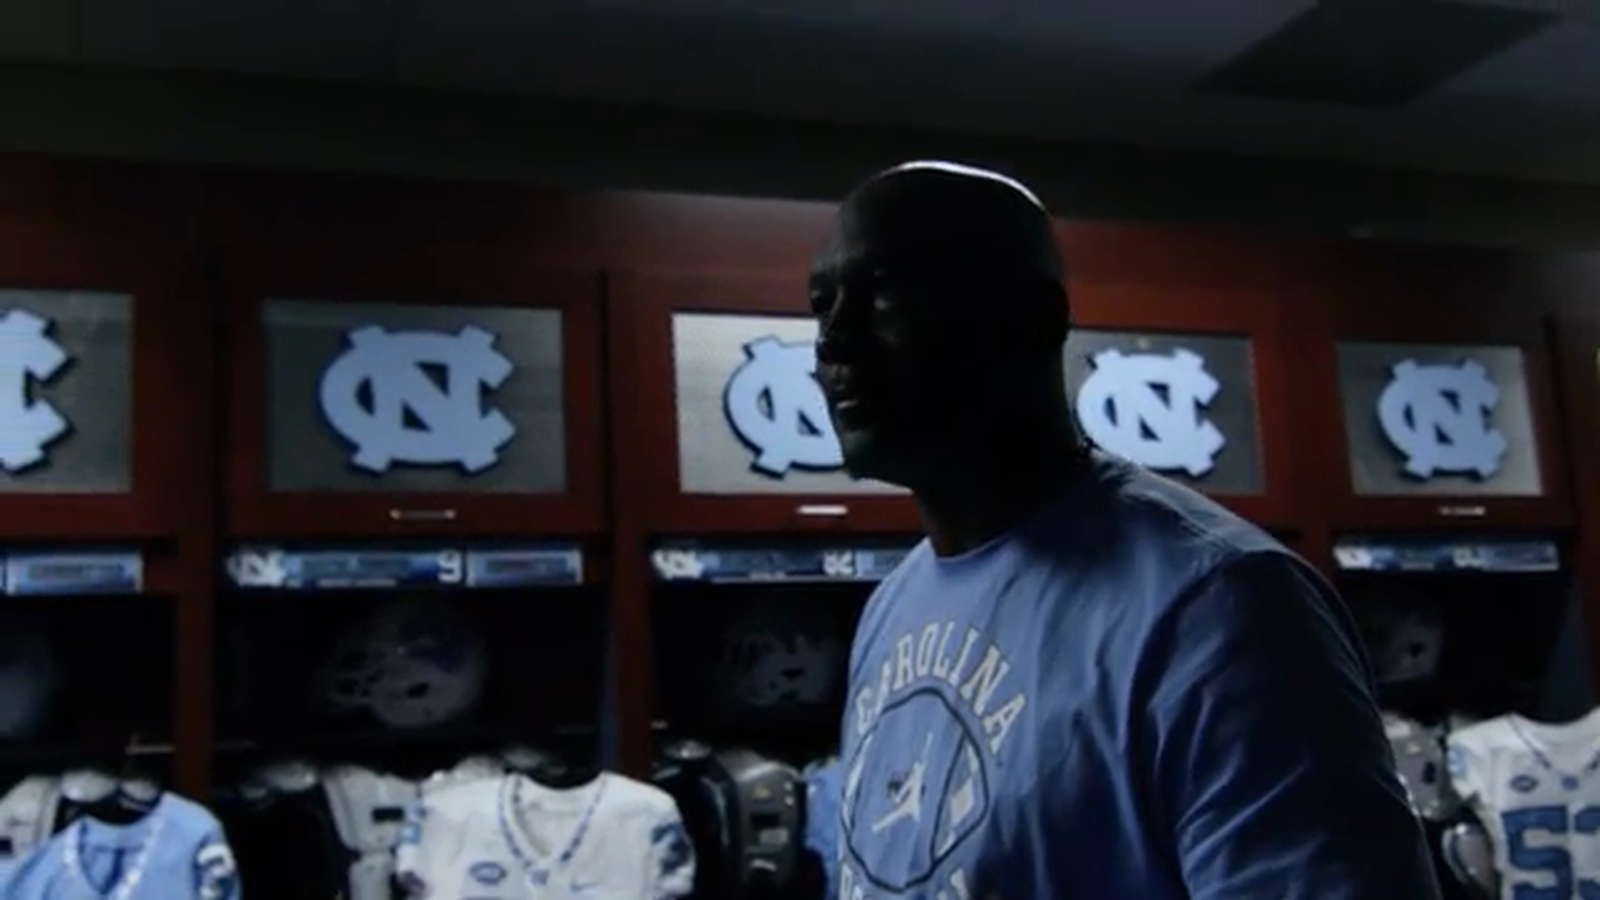 Jordan Brand Expands Partnership with UNC to Include Football - Nike News